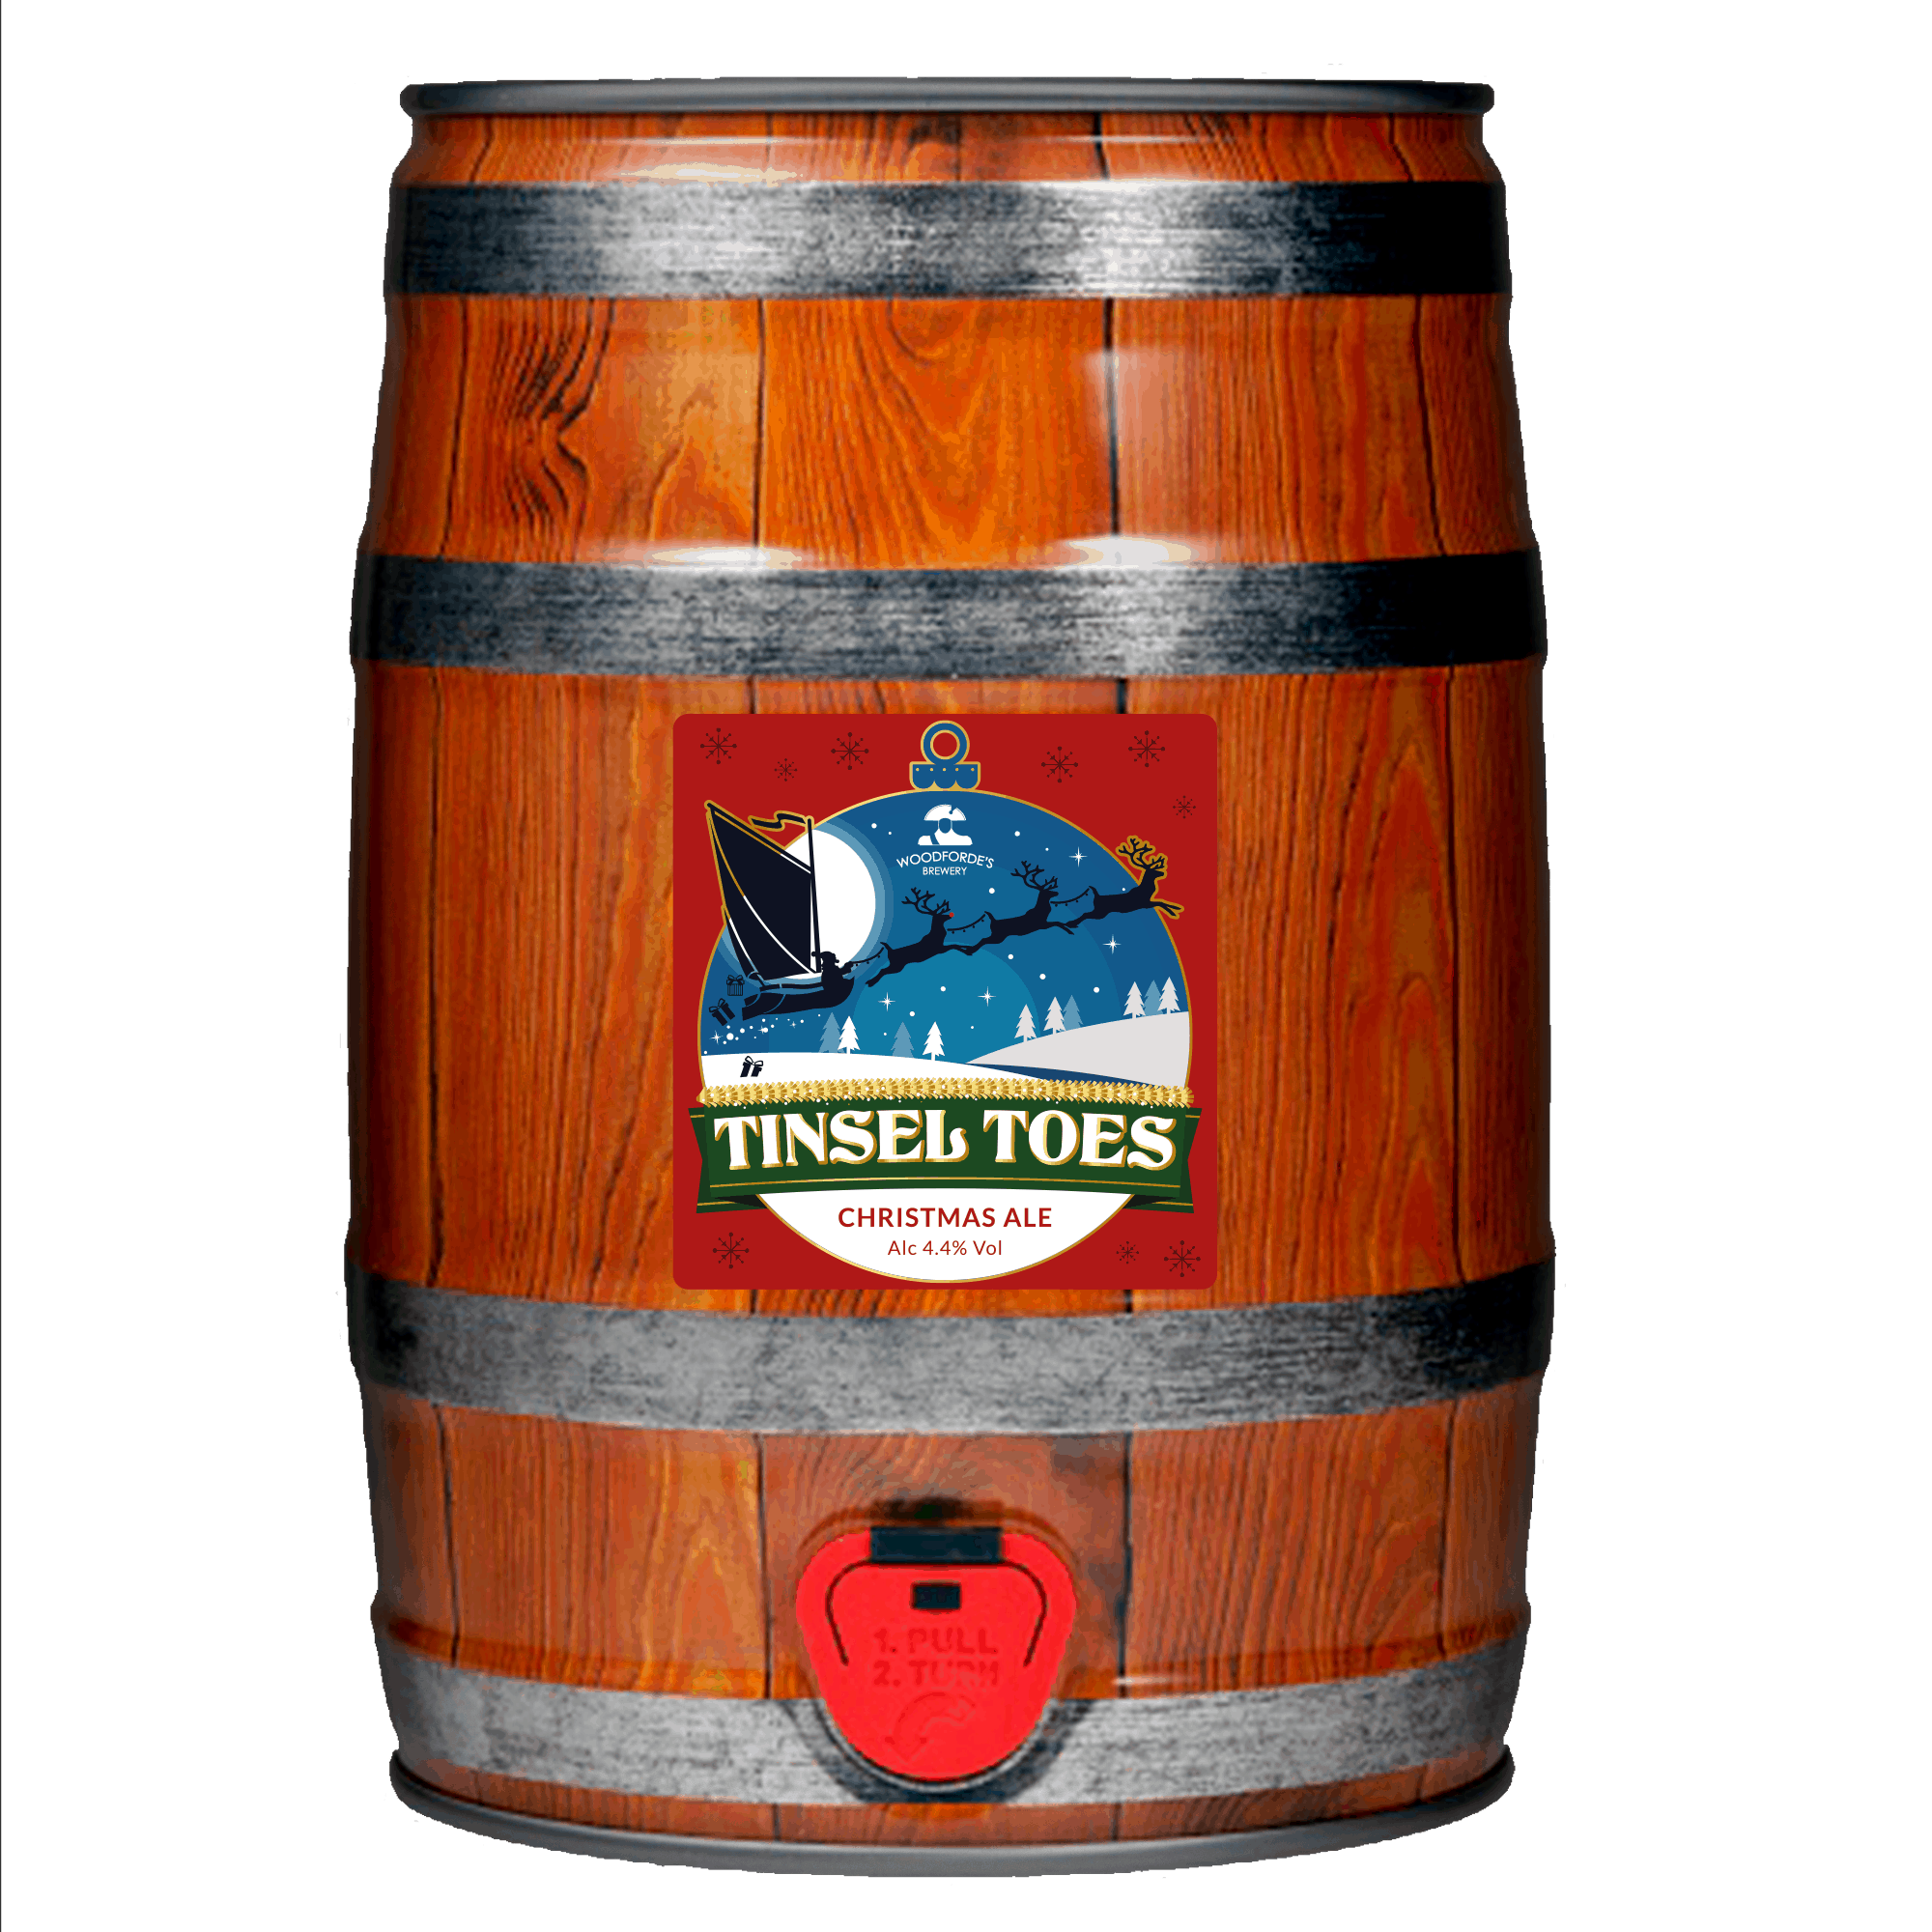 Tinsel Toes Mini Cask by Woodforde's Brewery